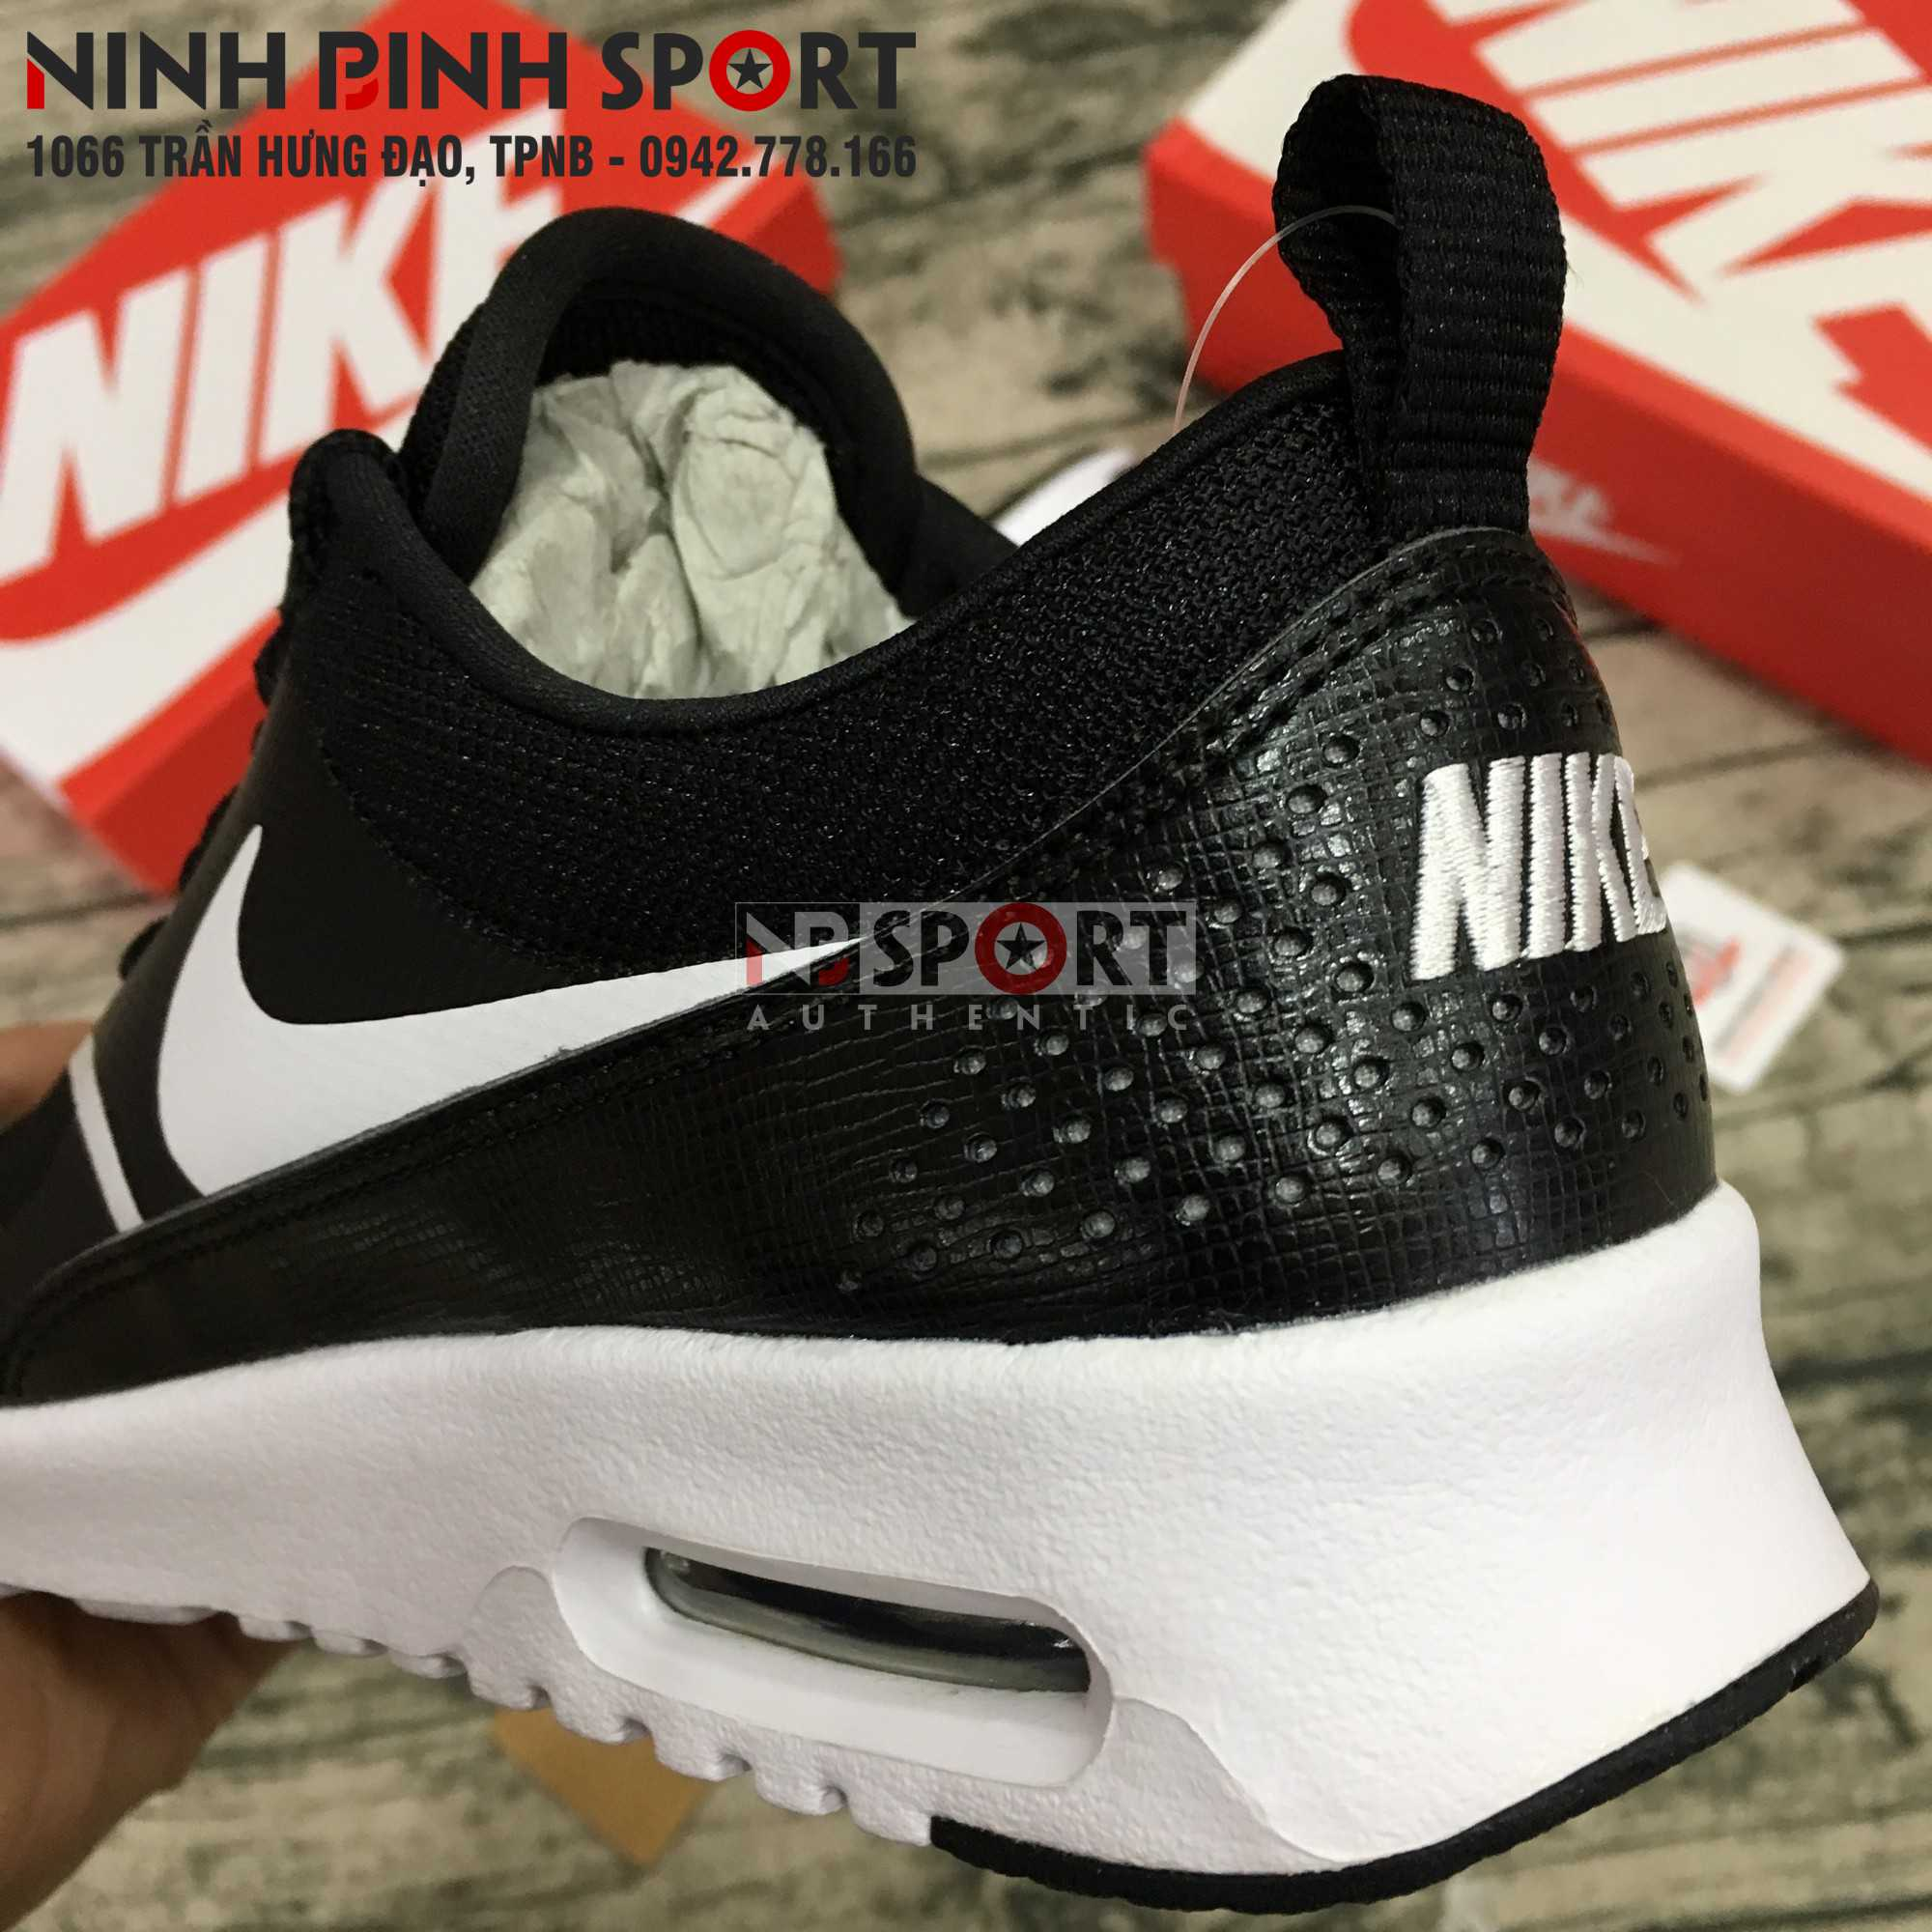 the best attitude cb413 46c88 Giầy thể thao nữ Nike Wmns Air Max Thea 599409-028